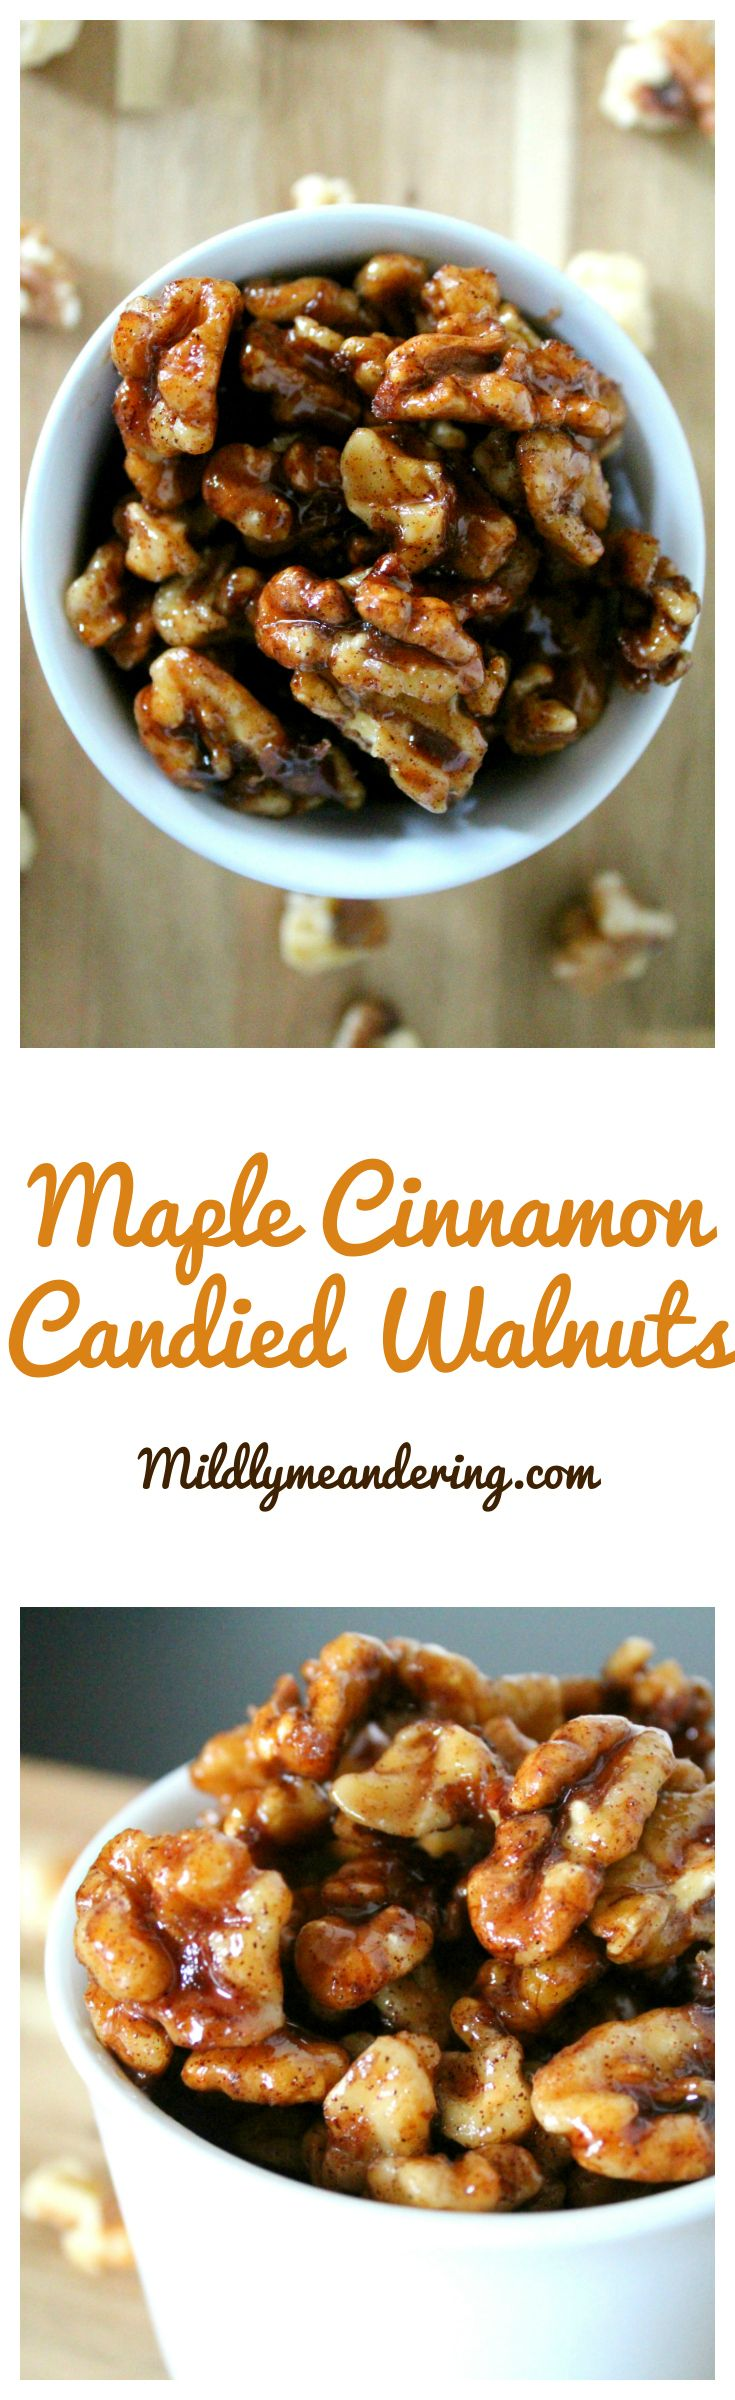 Maple Cinnamon Candied Walnuts - Mildly Meandering